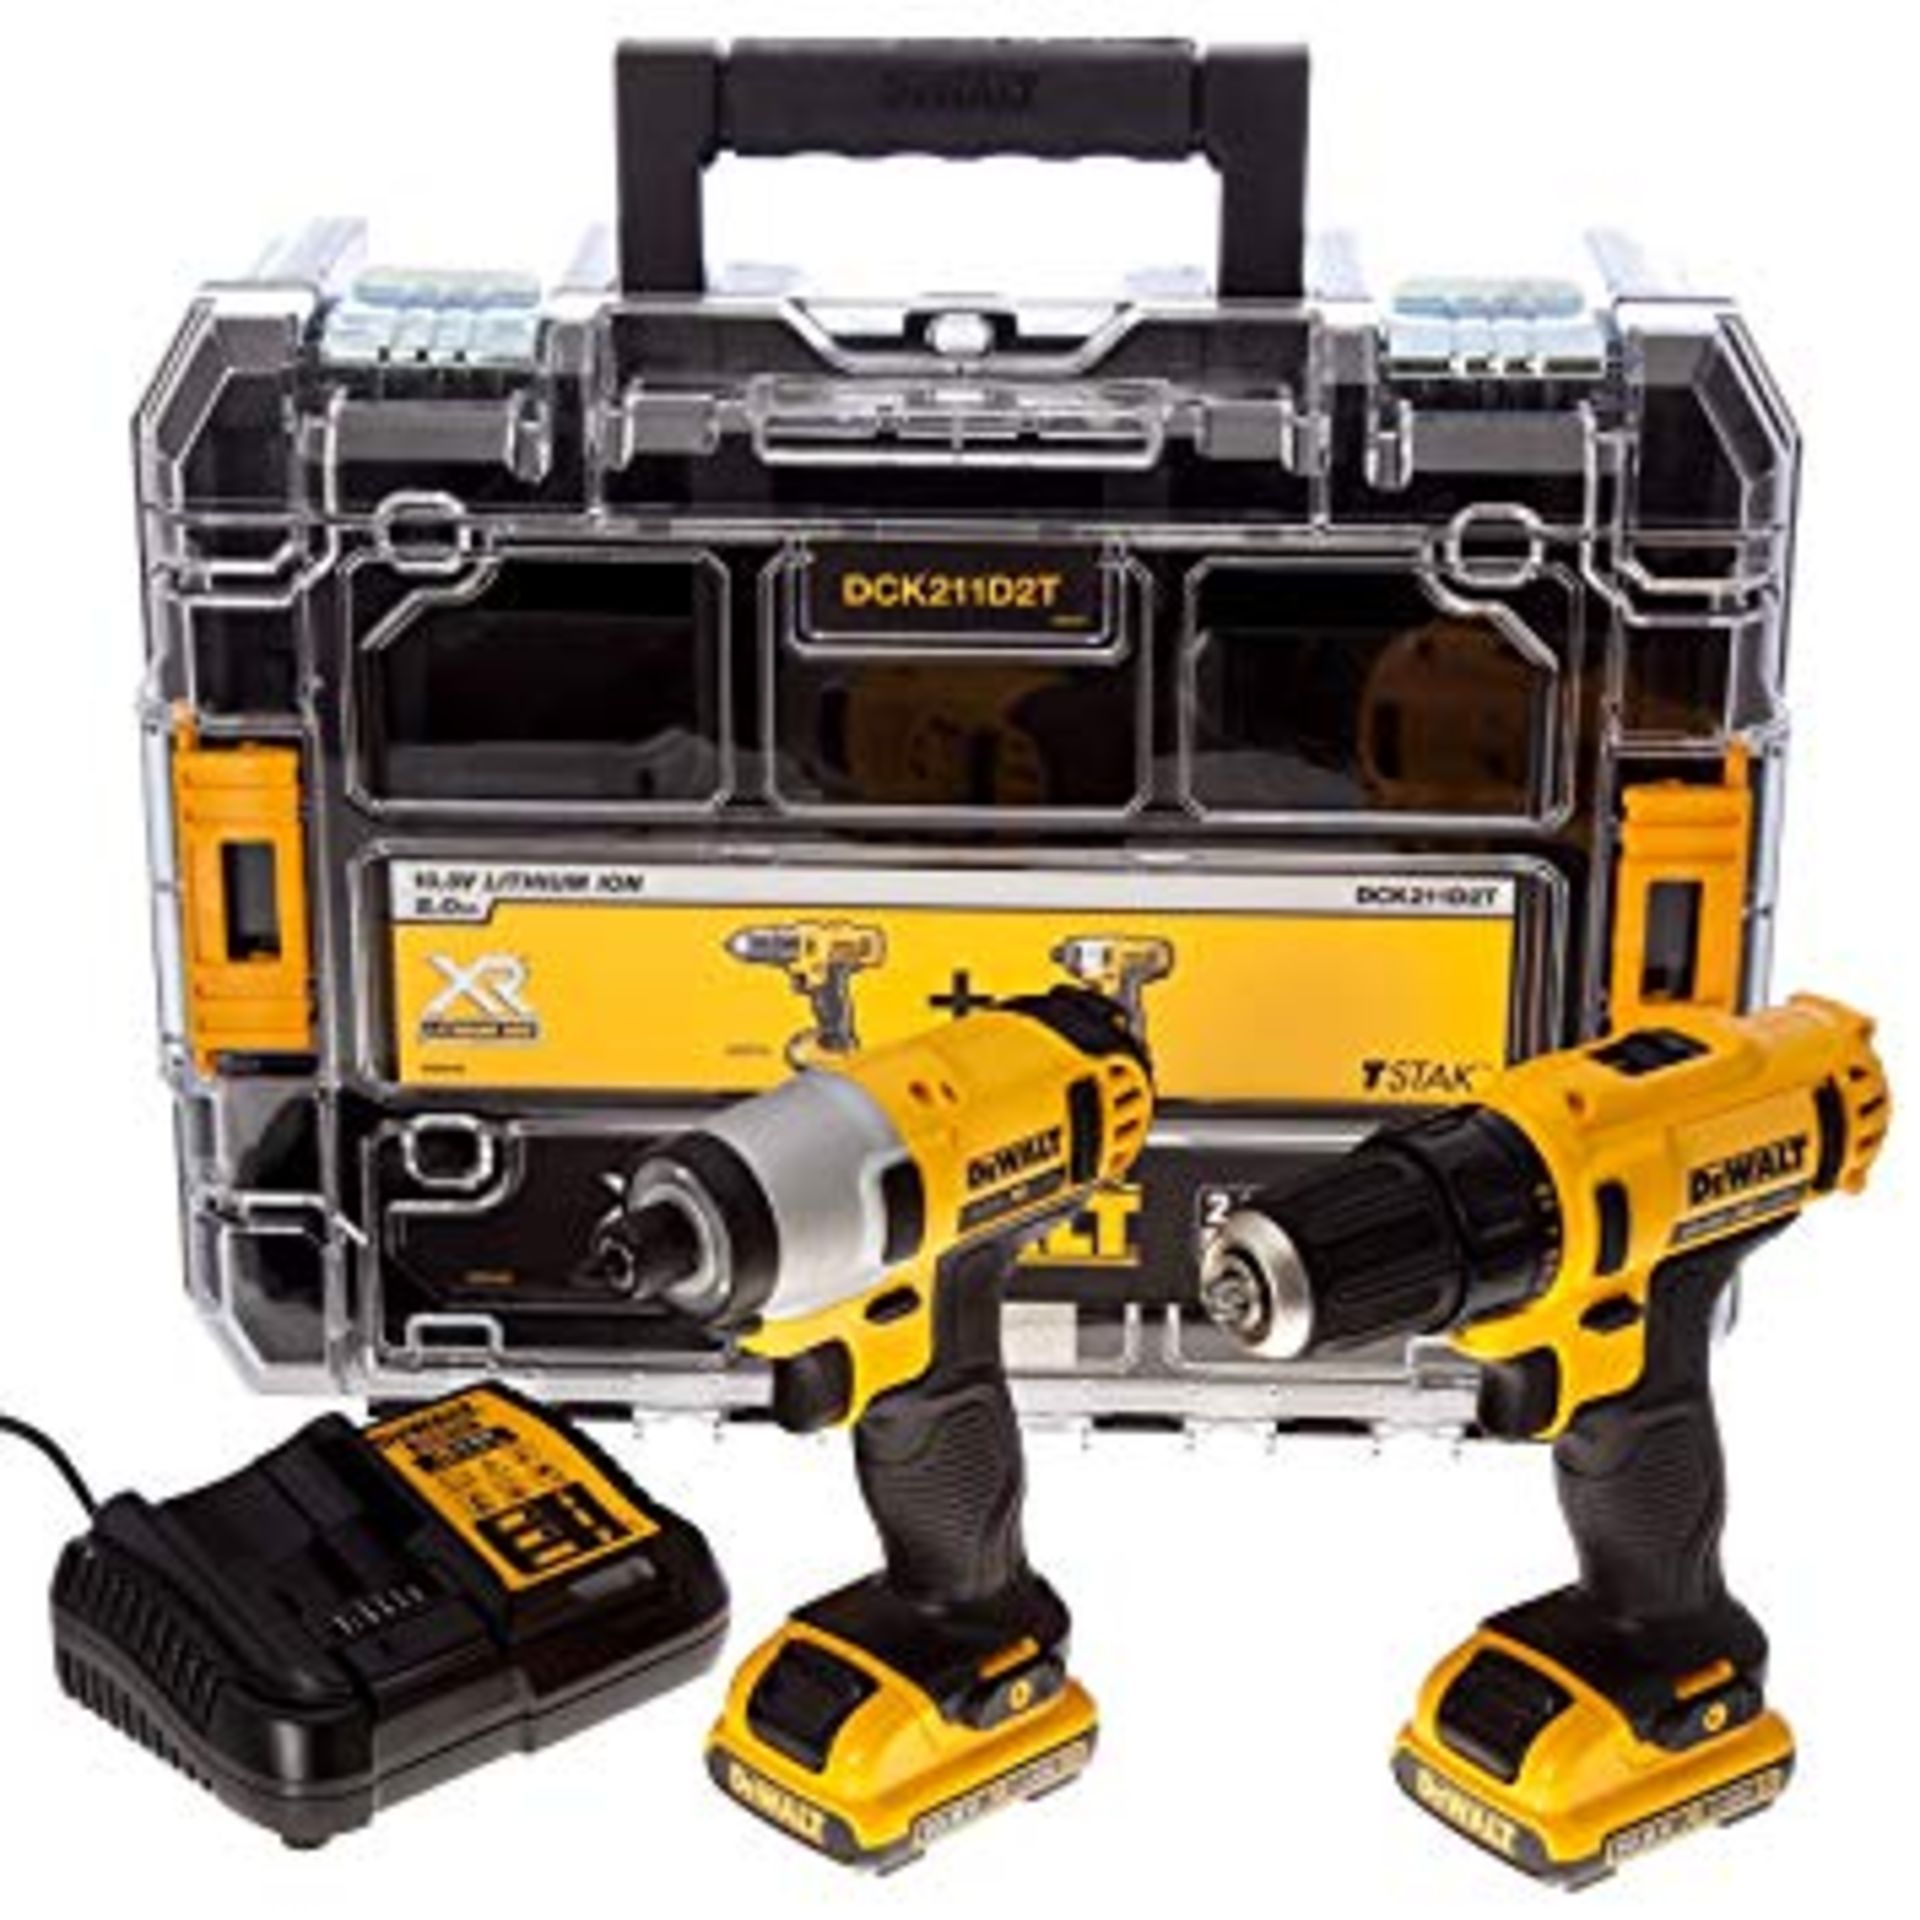 Lot 11523 - V Brand New DeWalt 10.8v Twin Drill & Impact Driver Kit + Two Batteries + Charger